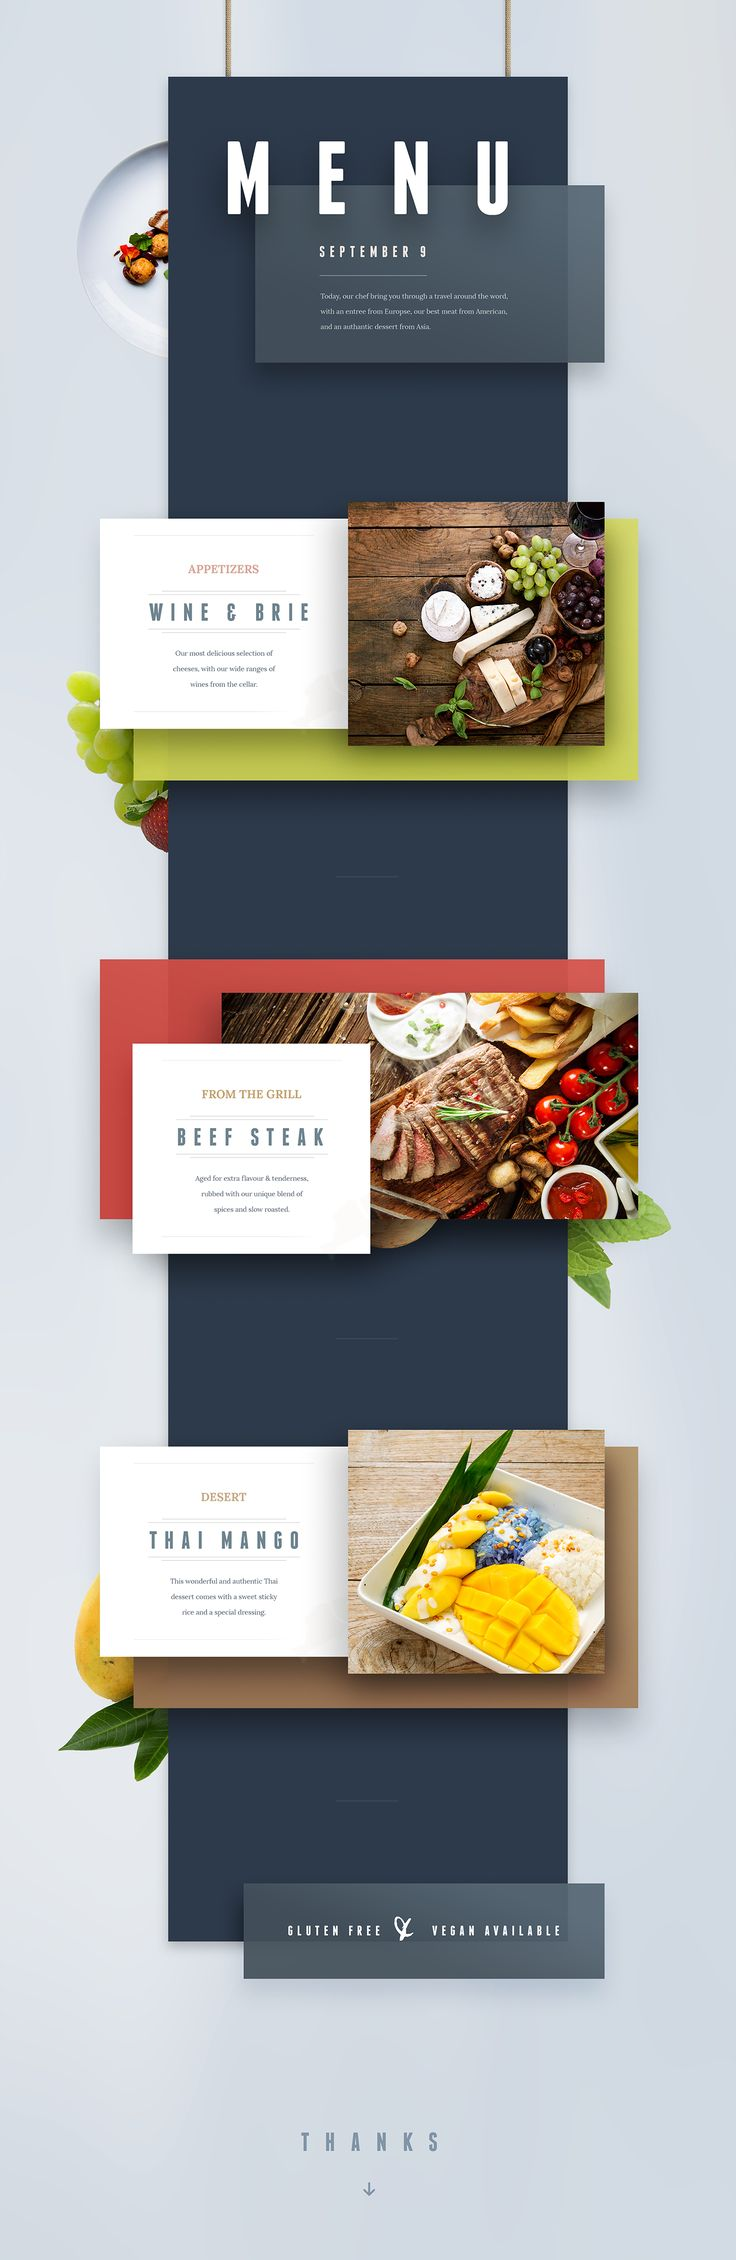 Best 25+ Email design ideas on Pinterest | Email design ...